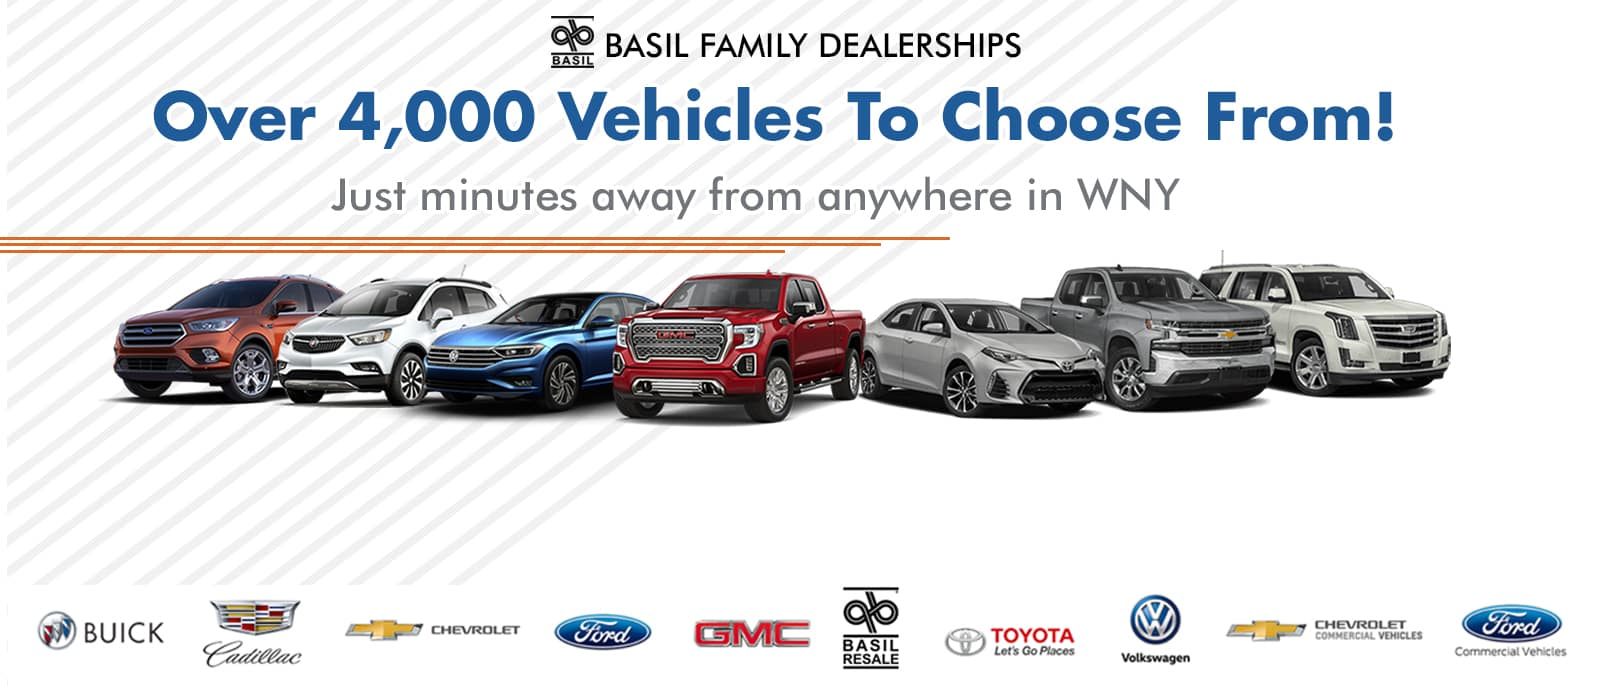 Basil Family Dealerships